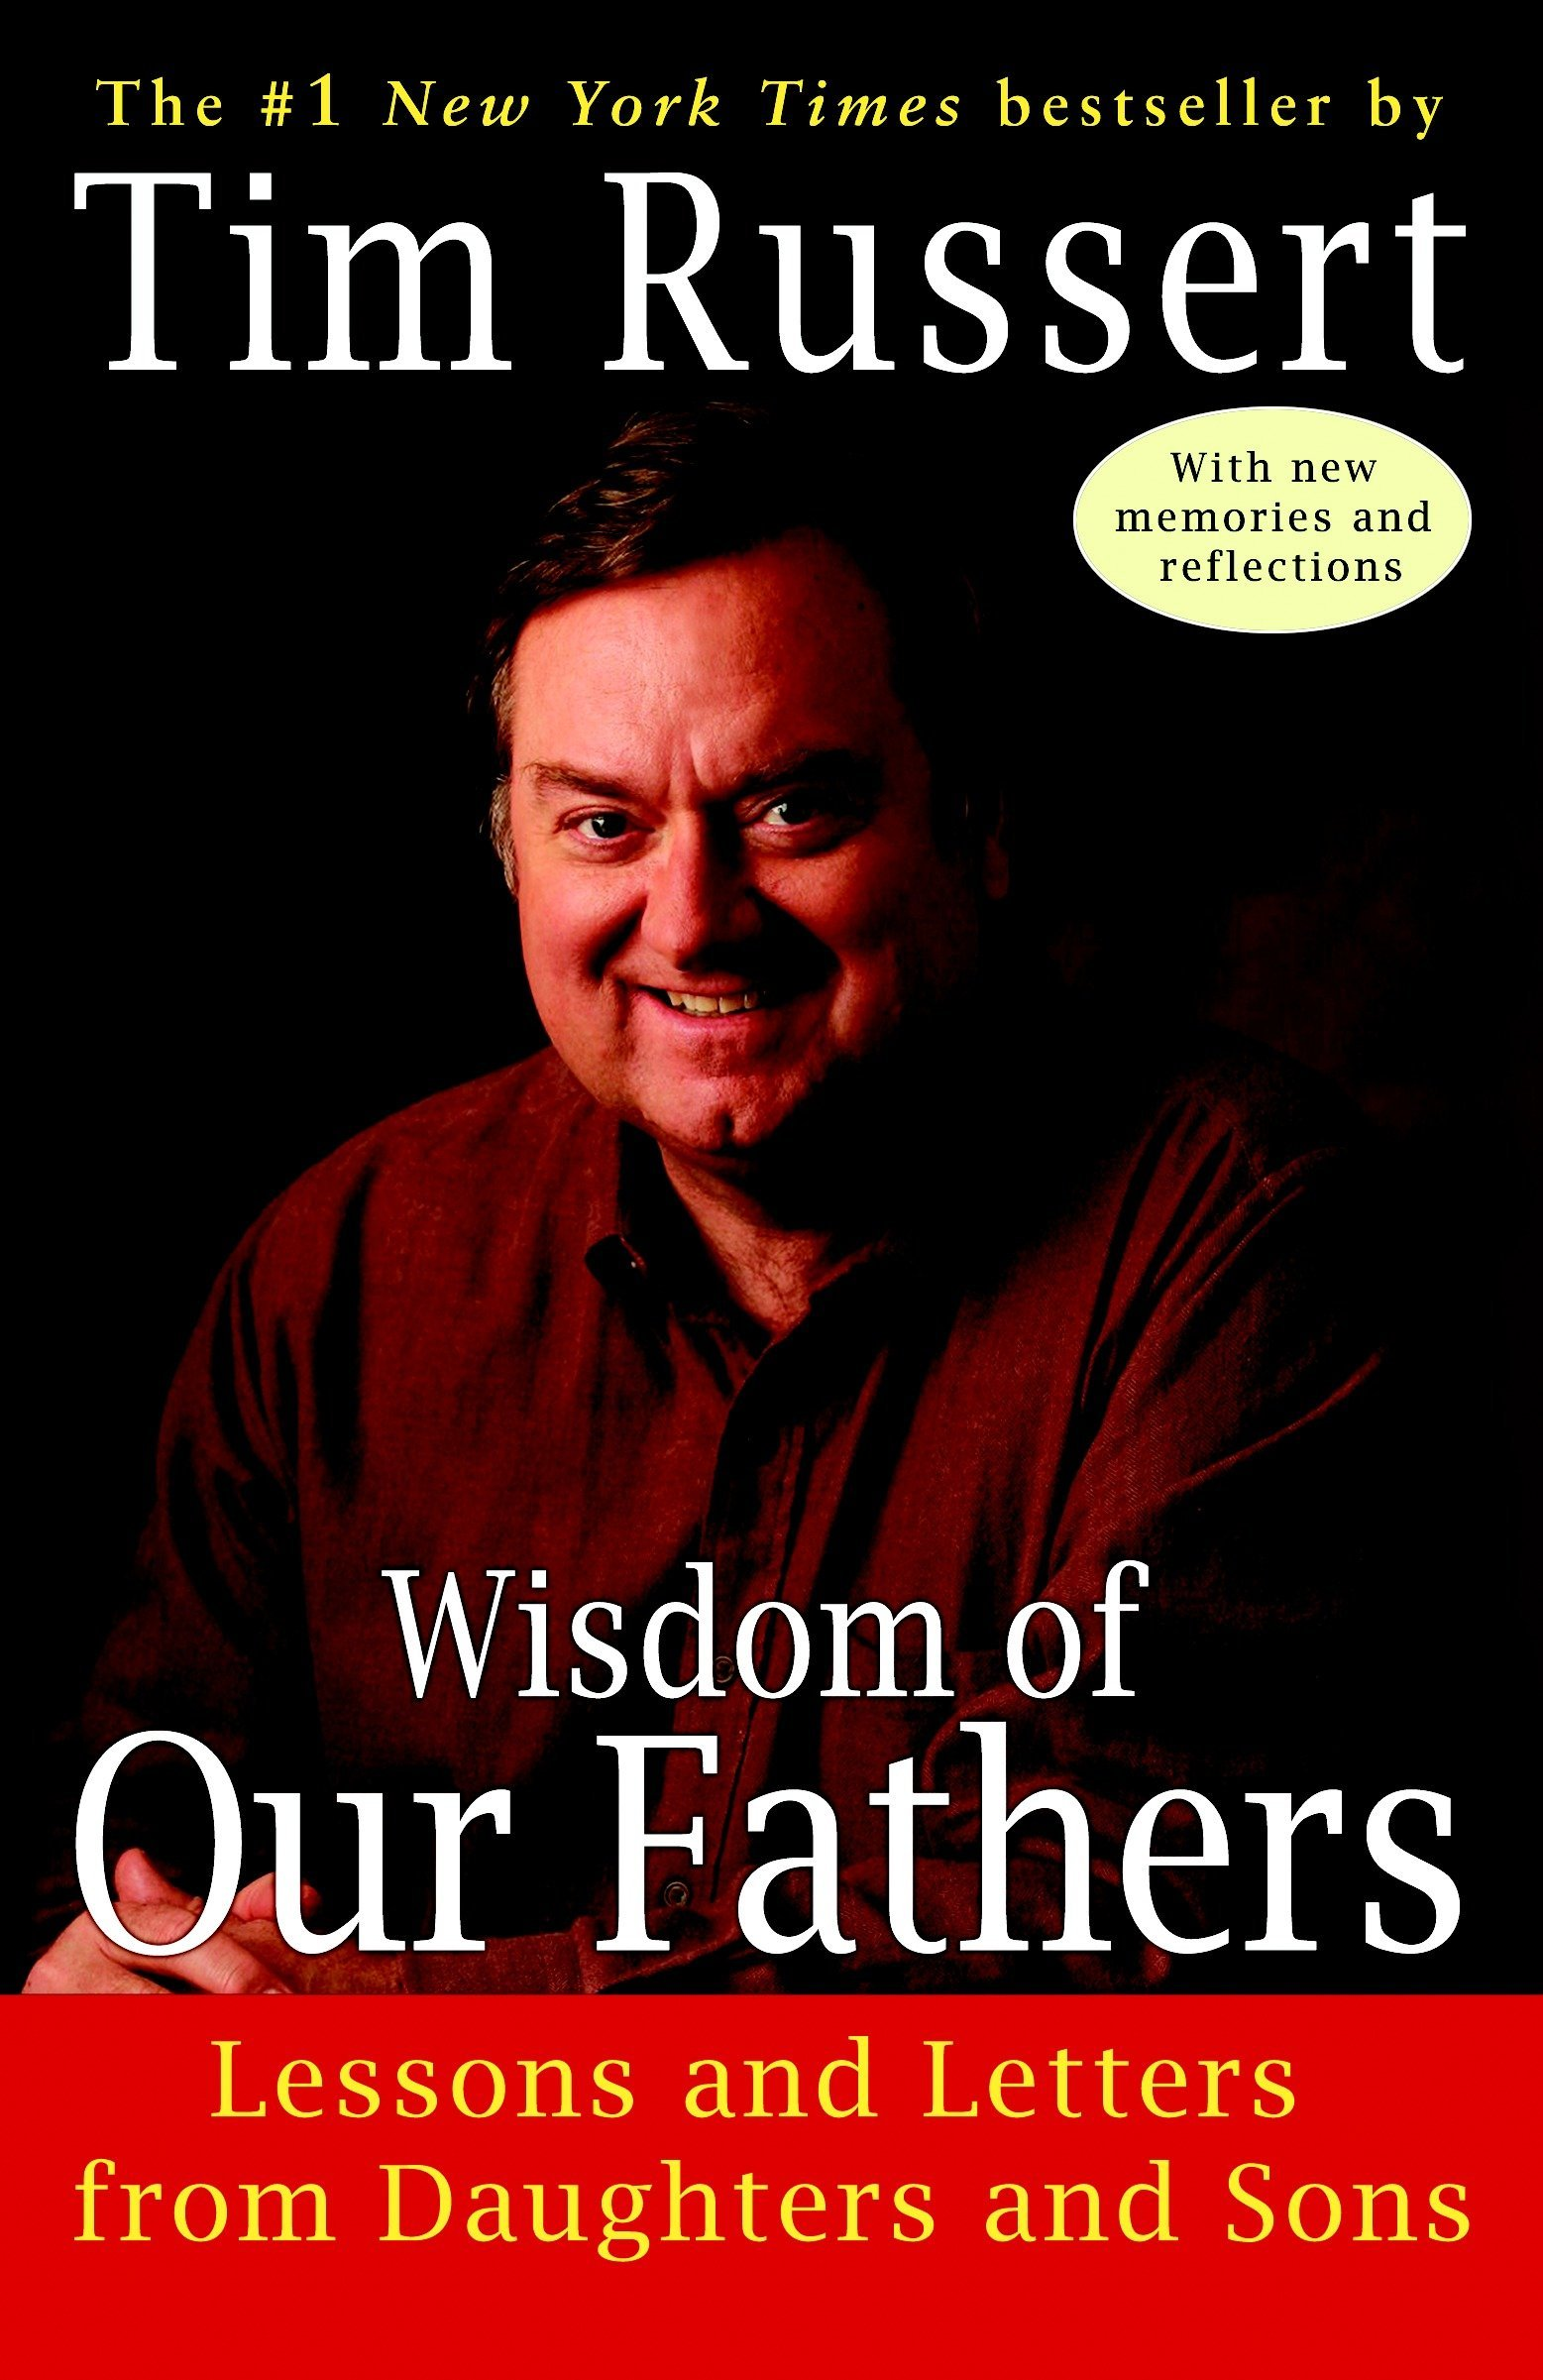 Read Wisdom Of Our Fathers Lessons And Letters From Daughters And Sons By Tim Russert